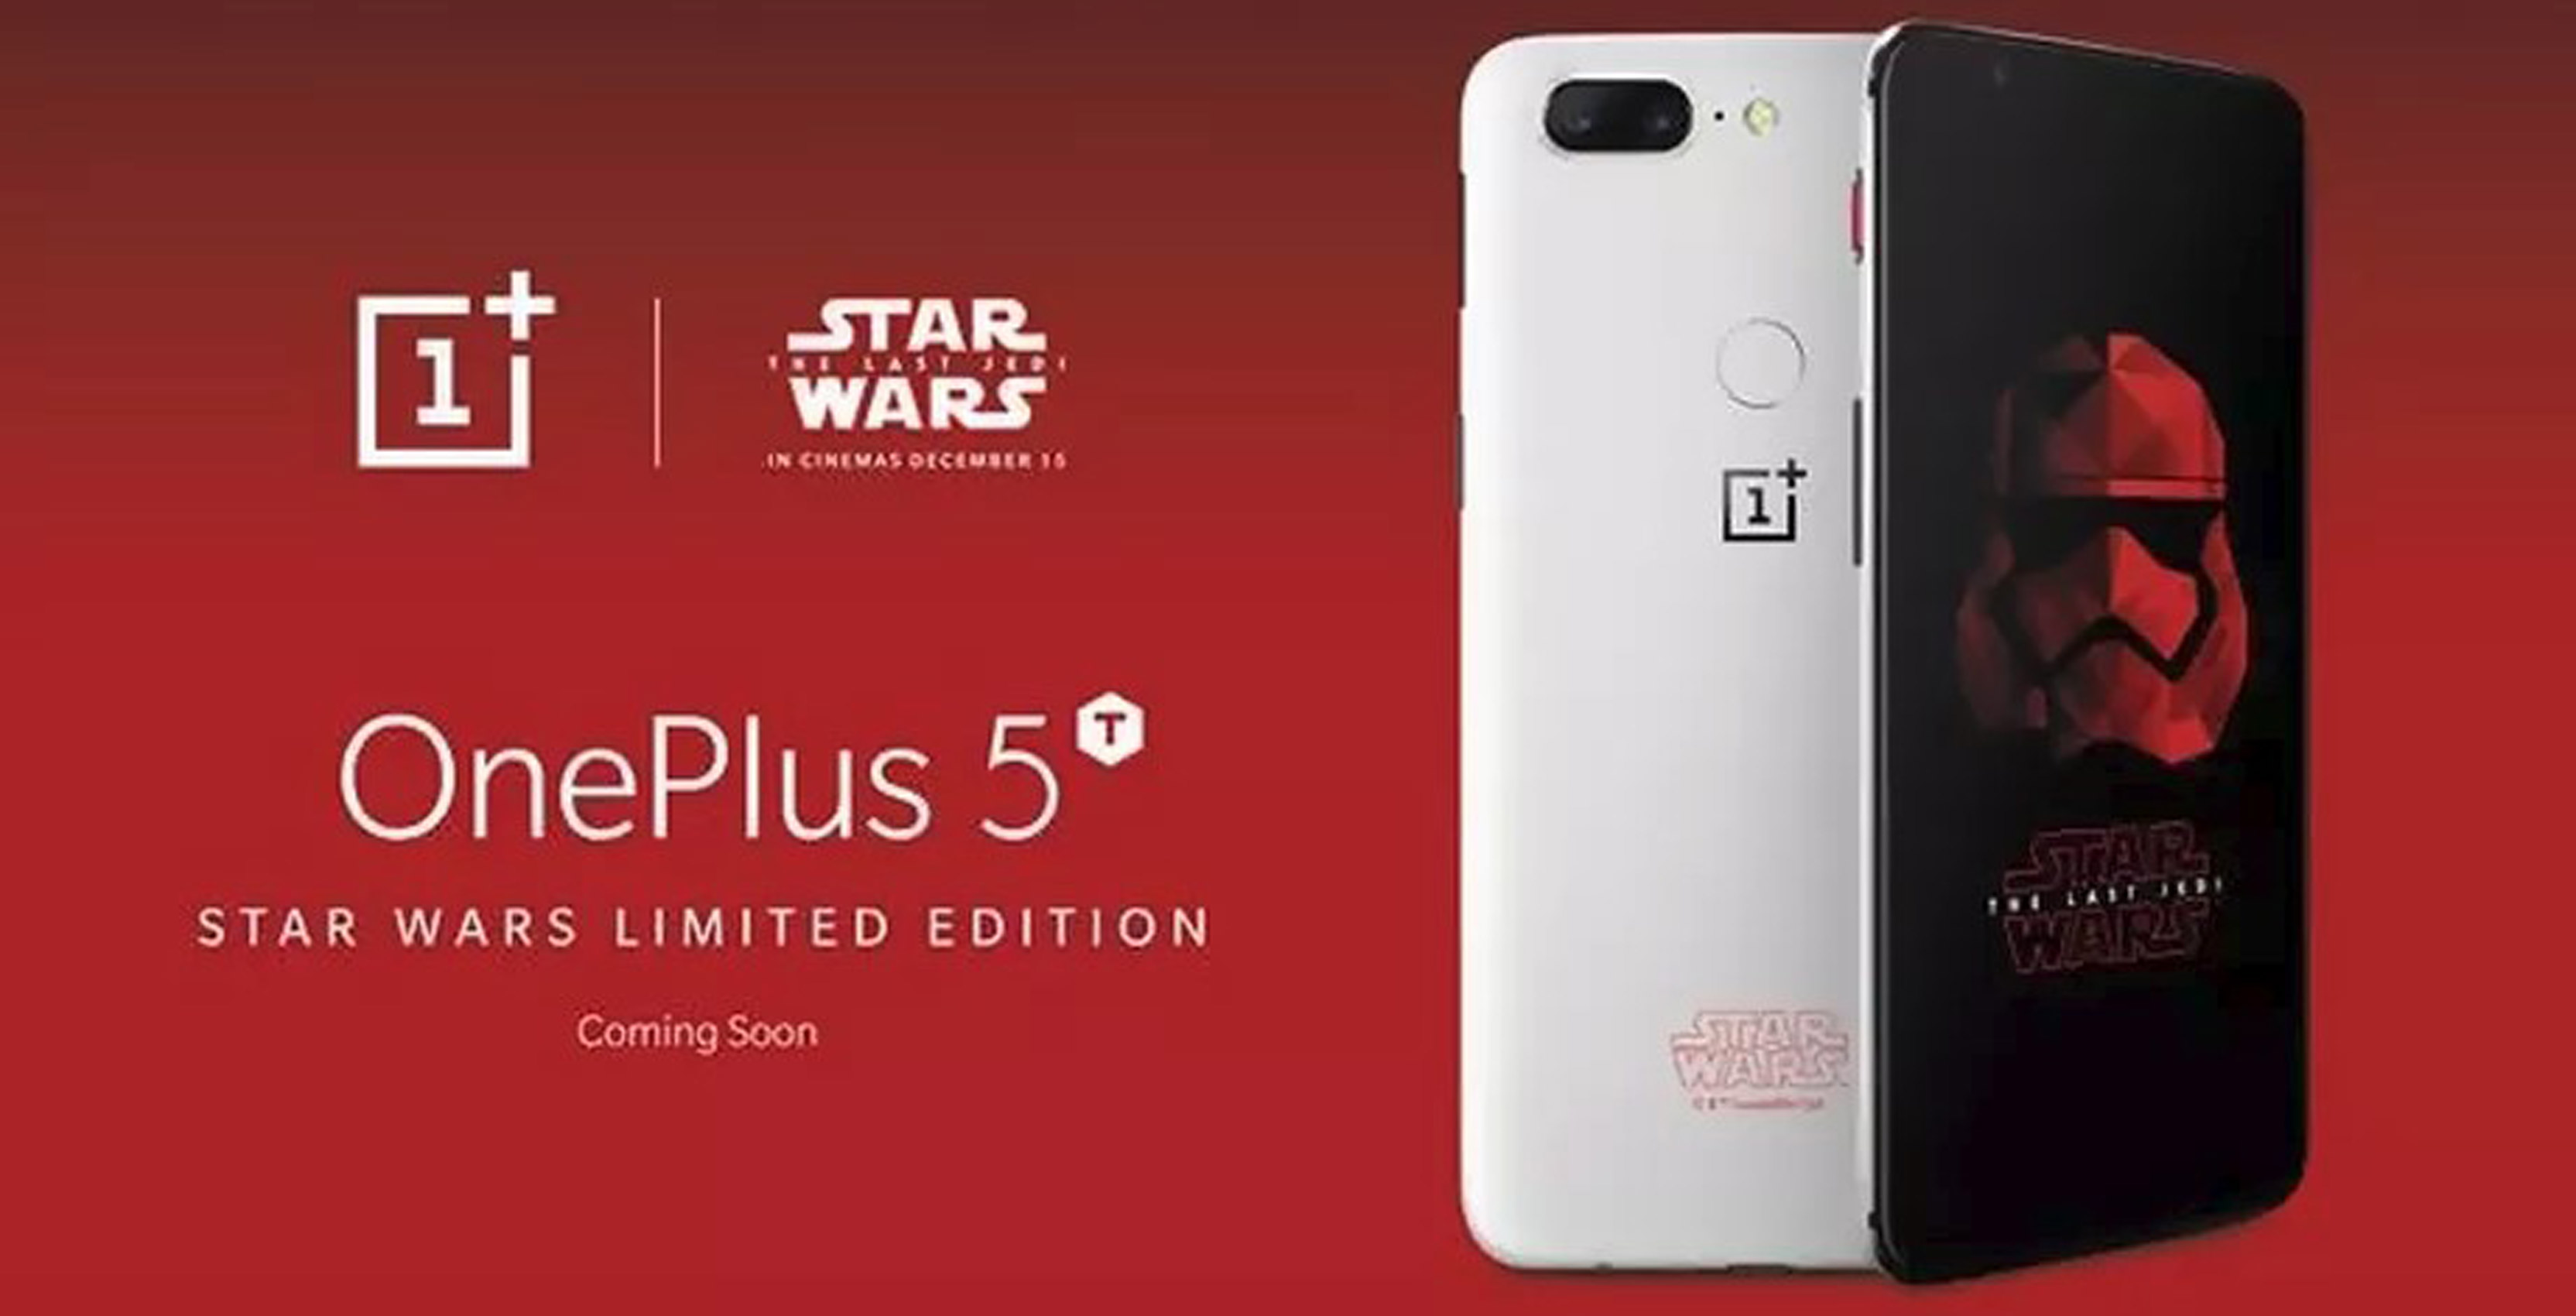 Star Wars-themed OnePlus 5T smartphone